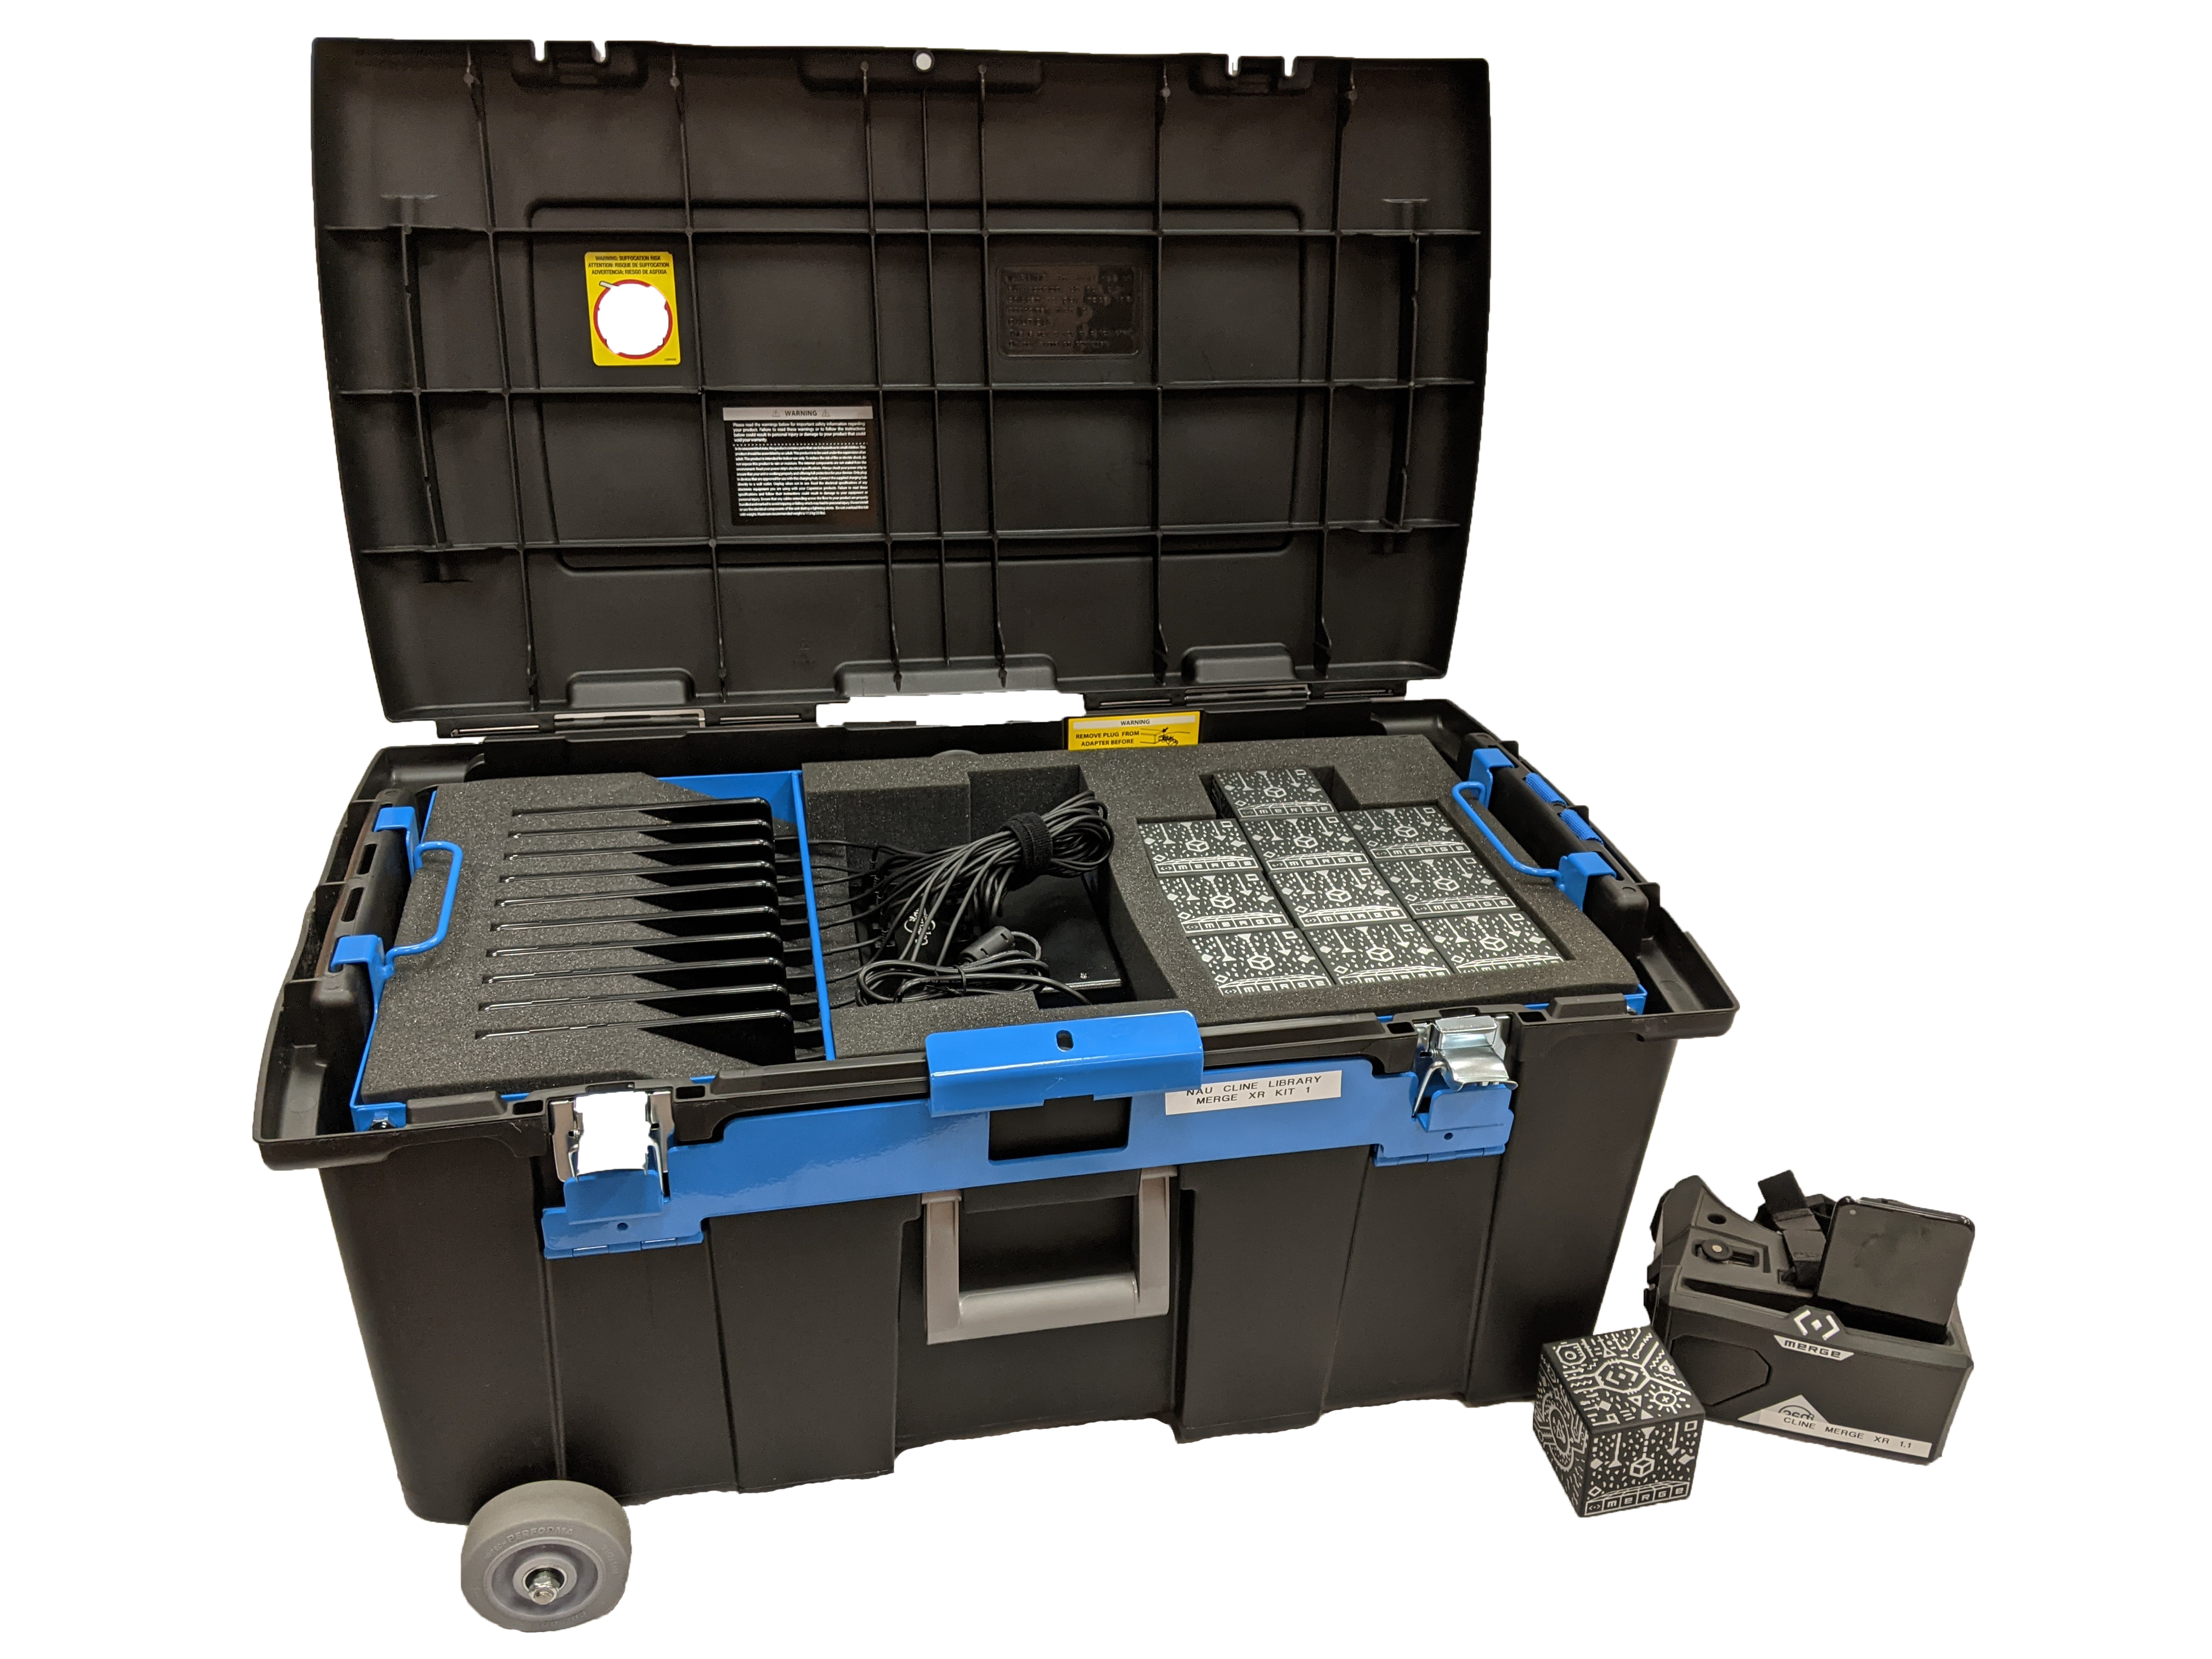 Merge XR kit components and portable case